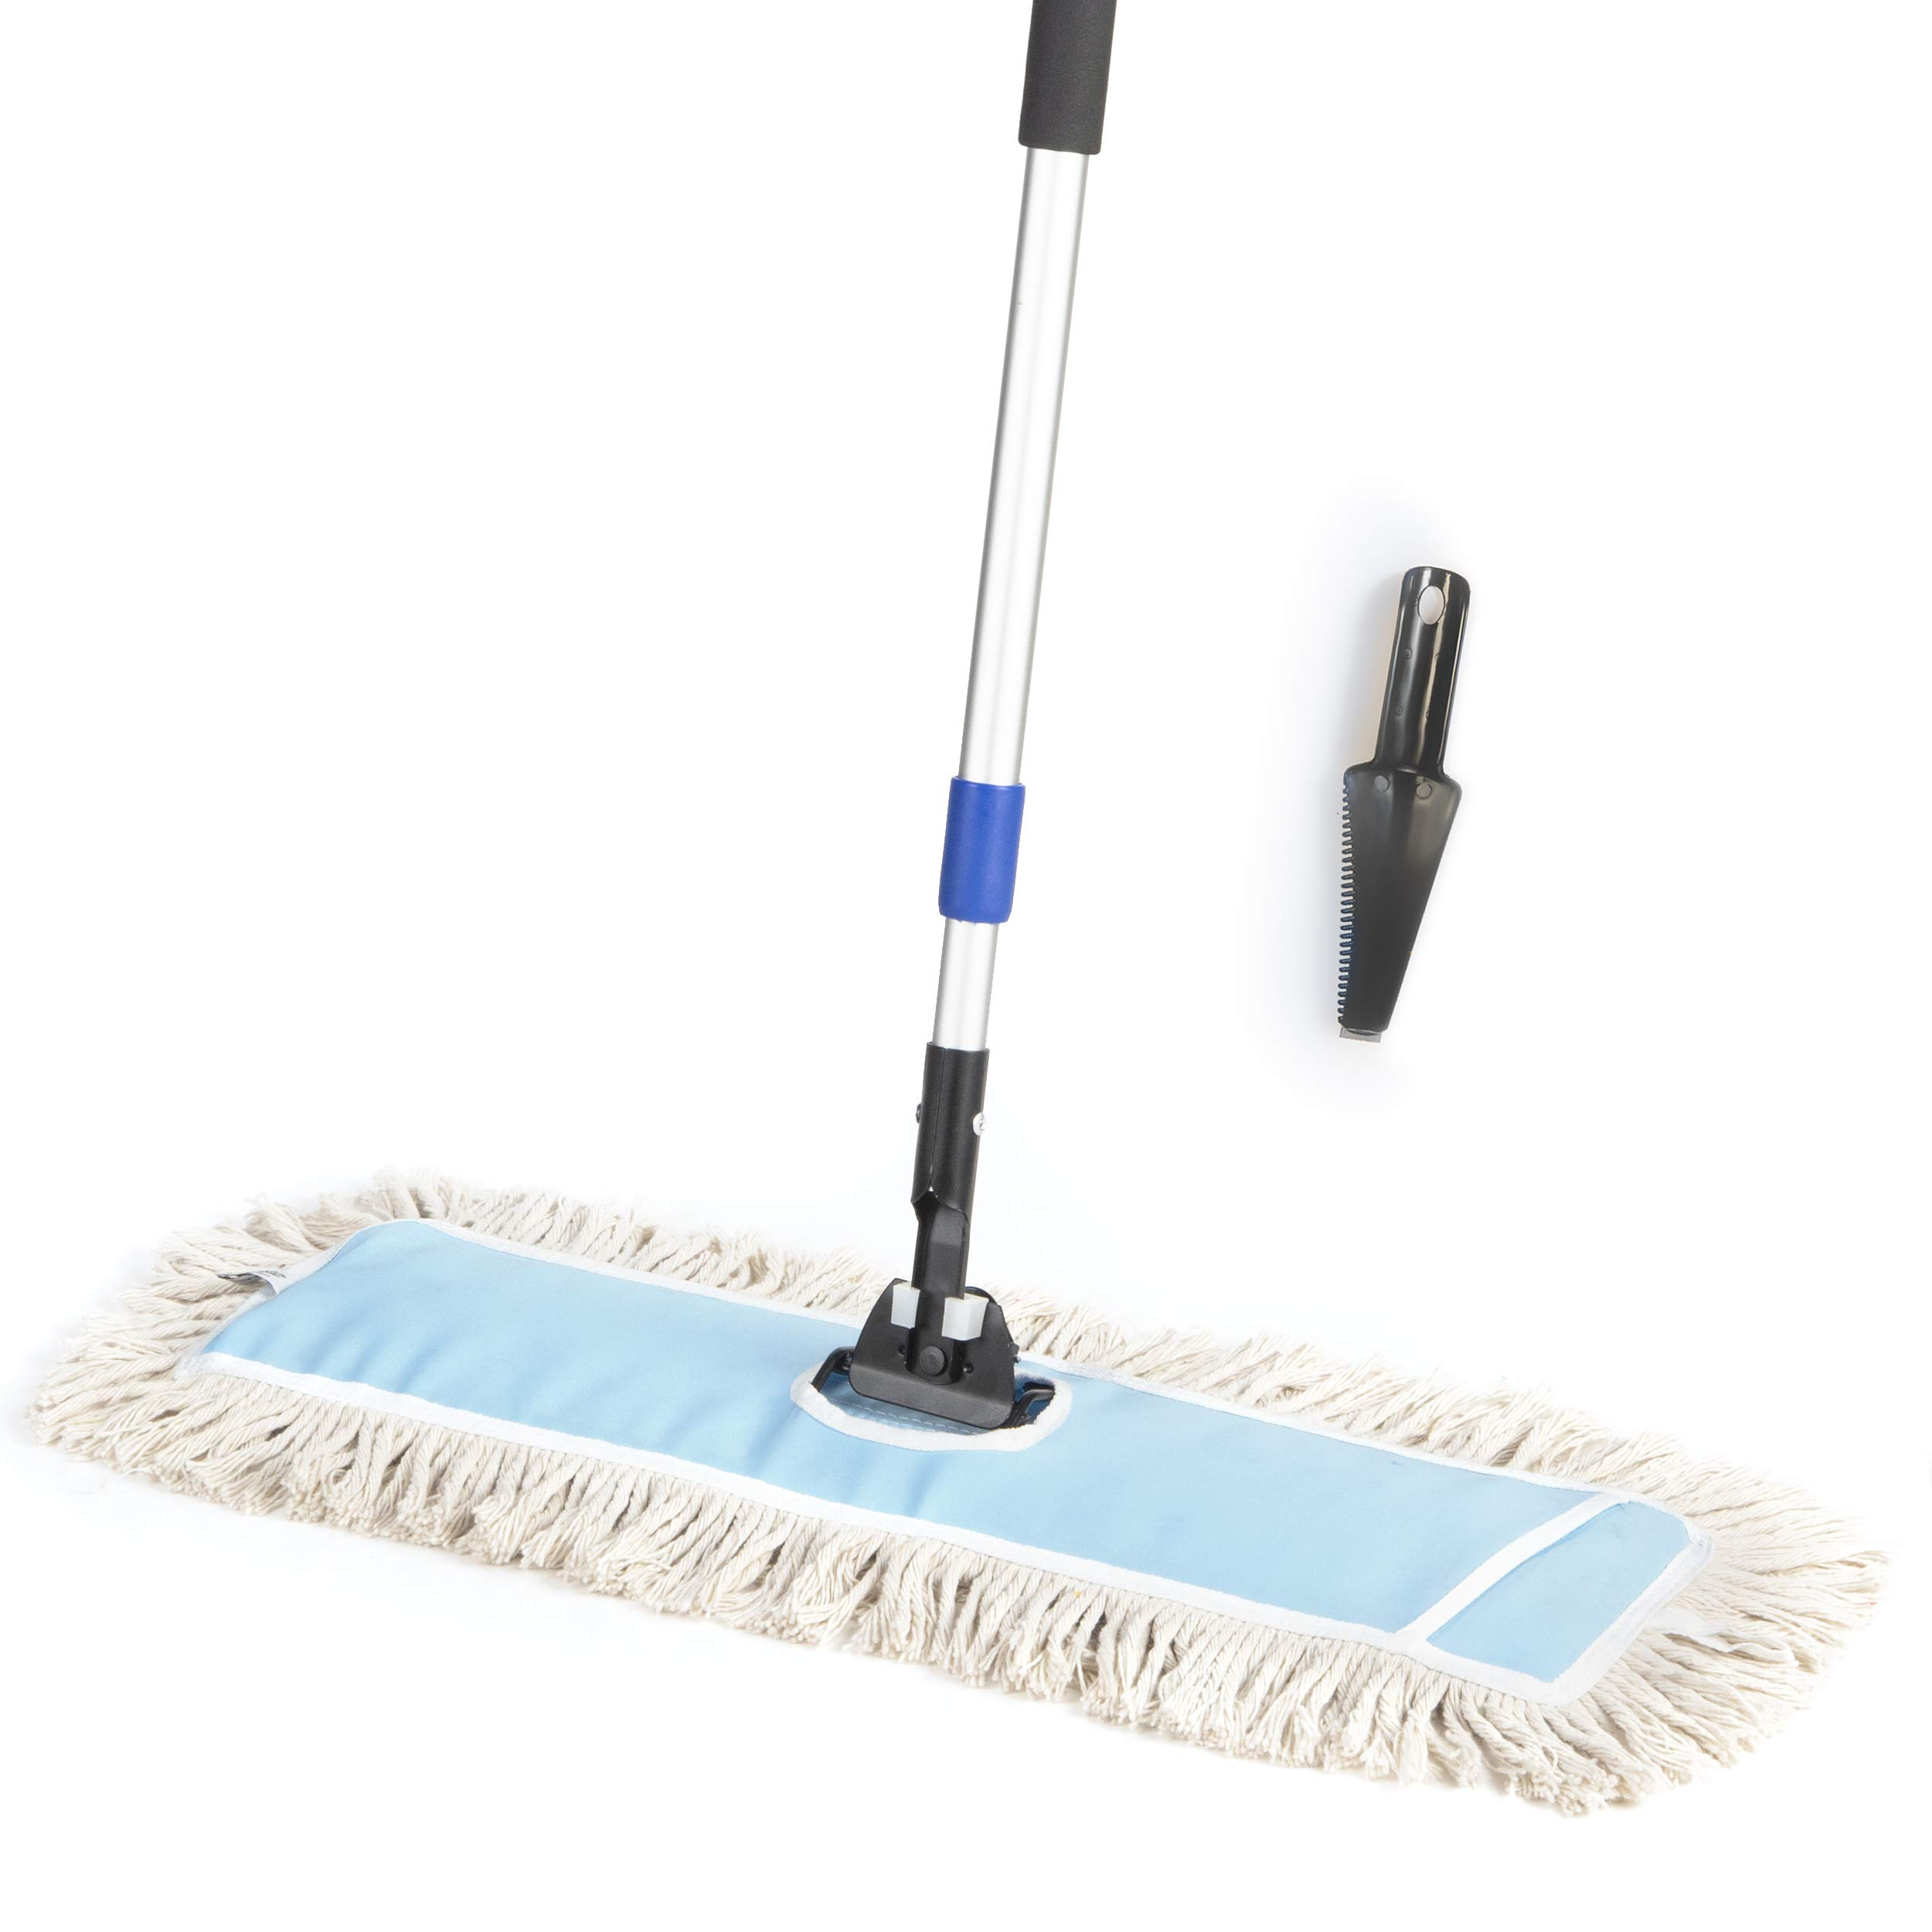 UZULIVING Cotton Dust Mop with 70'' Telescopic Handle (Extendable) Unbleached, Thick Mopping Pad | Lightweight Floor Cleaning Support | Kitchen Bathroom (1. Full Set of 24'' Mop)